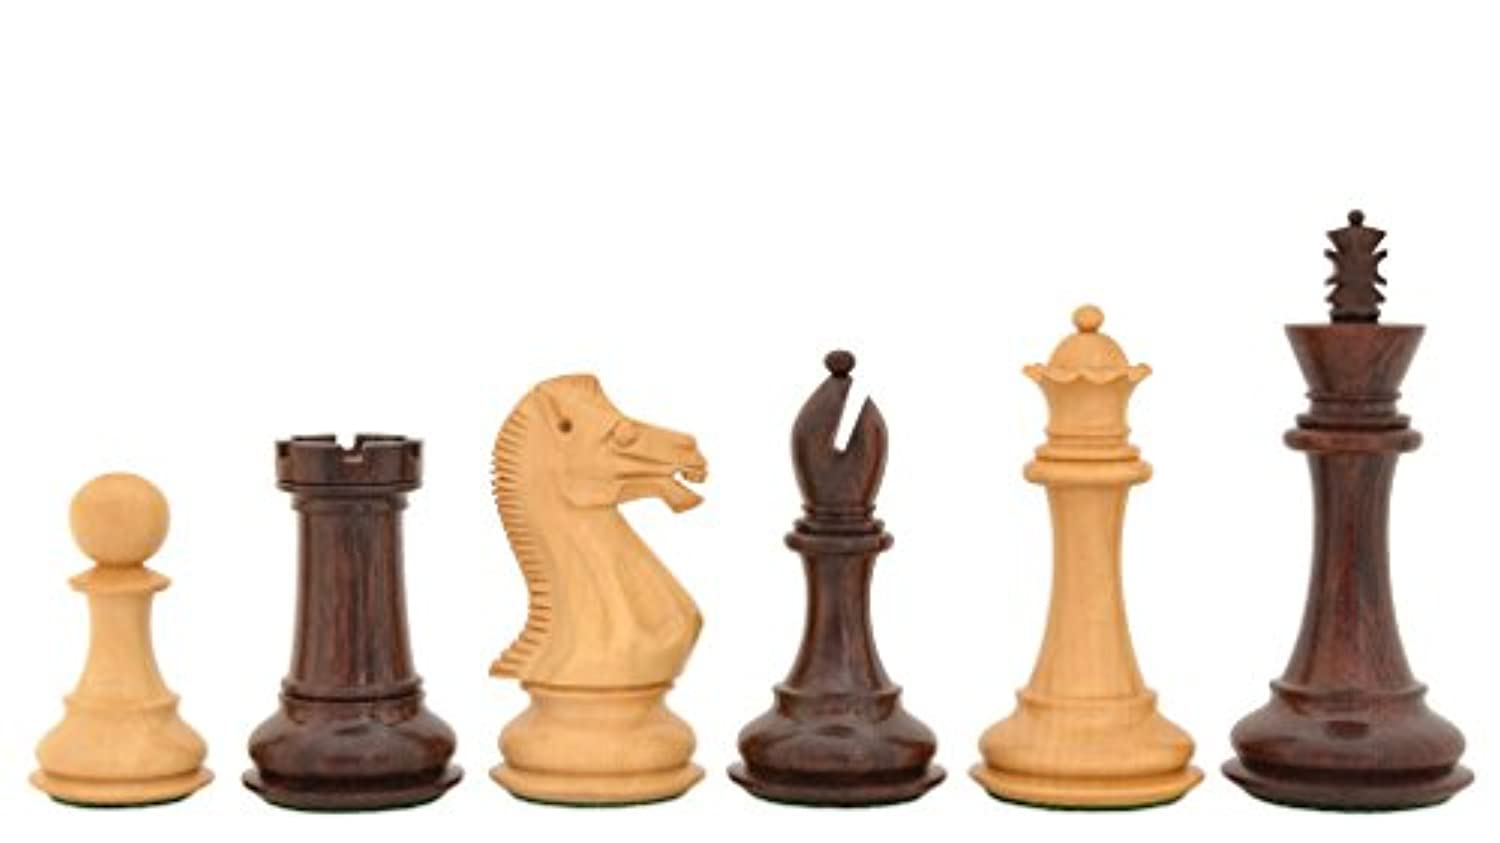 Chessbazaar The Staunton Series Wooden Hand Crafted Chess Pieces In Rose & Box Wood